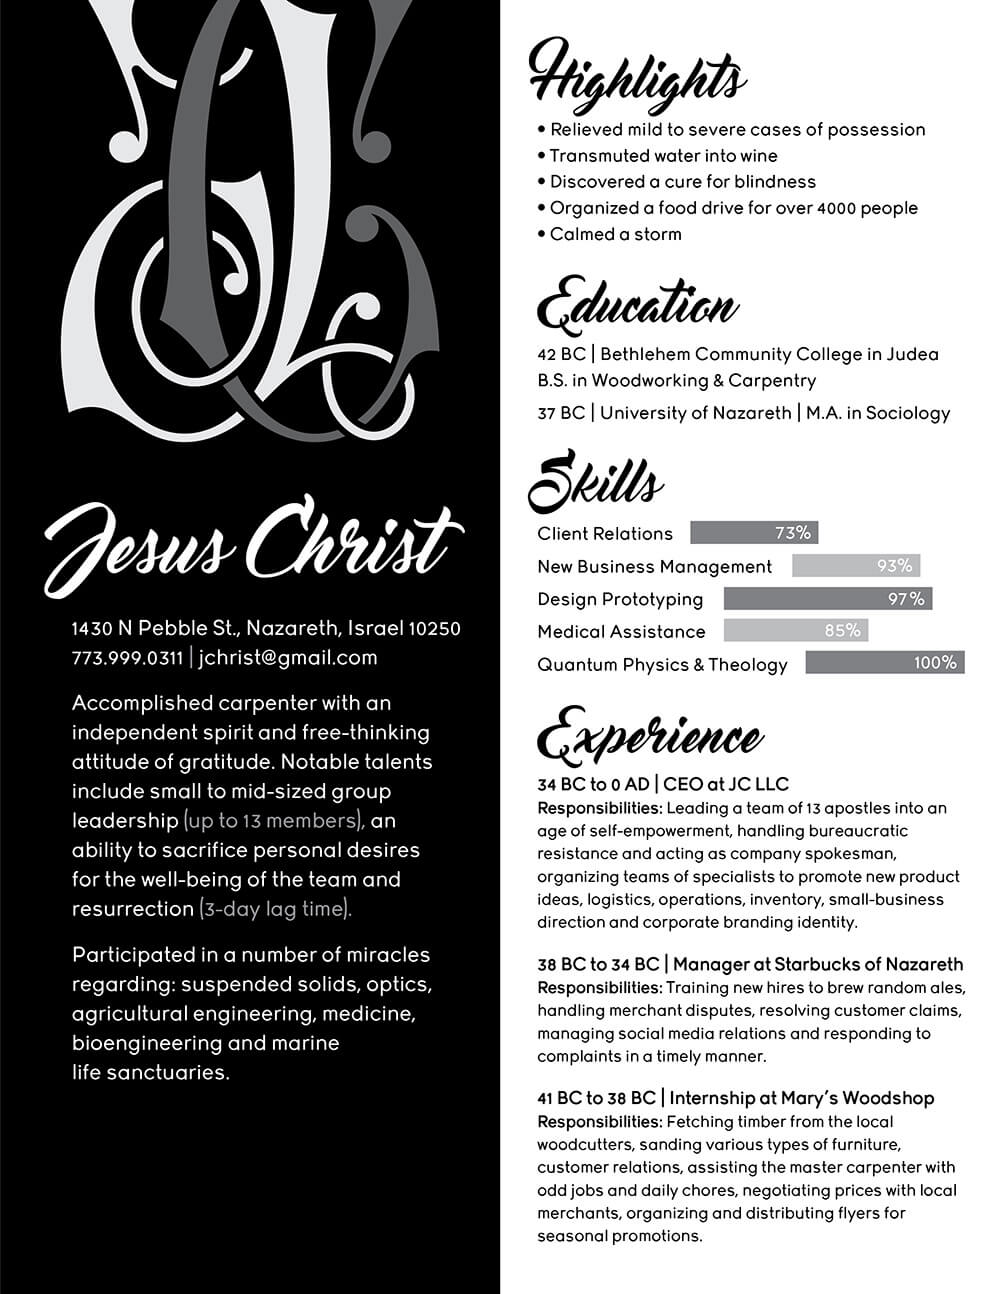 Jesus Christ's Resume